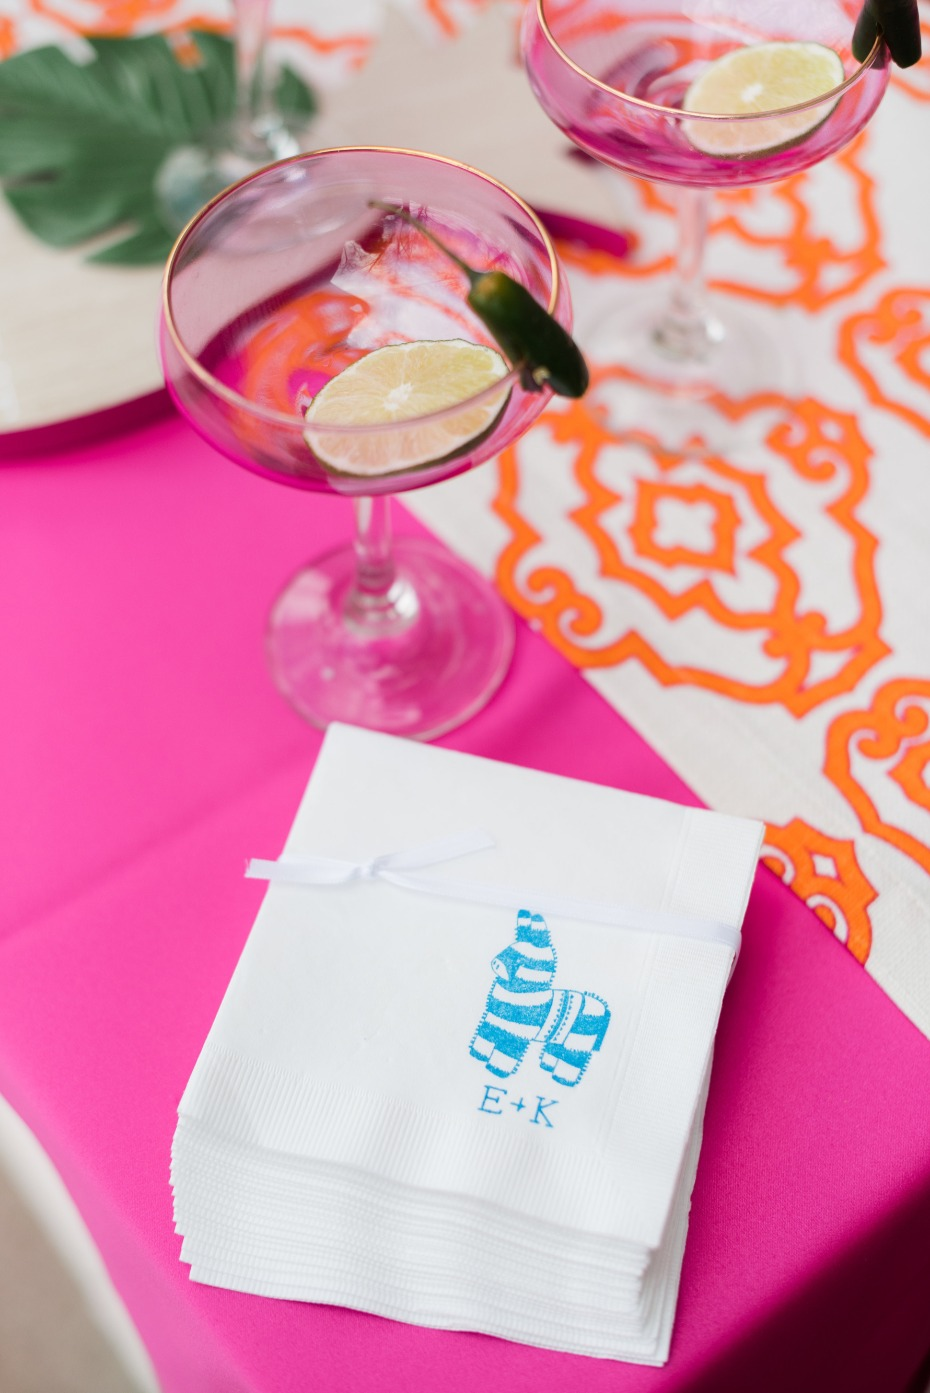 margaritas and cocktail napkins